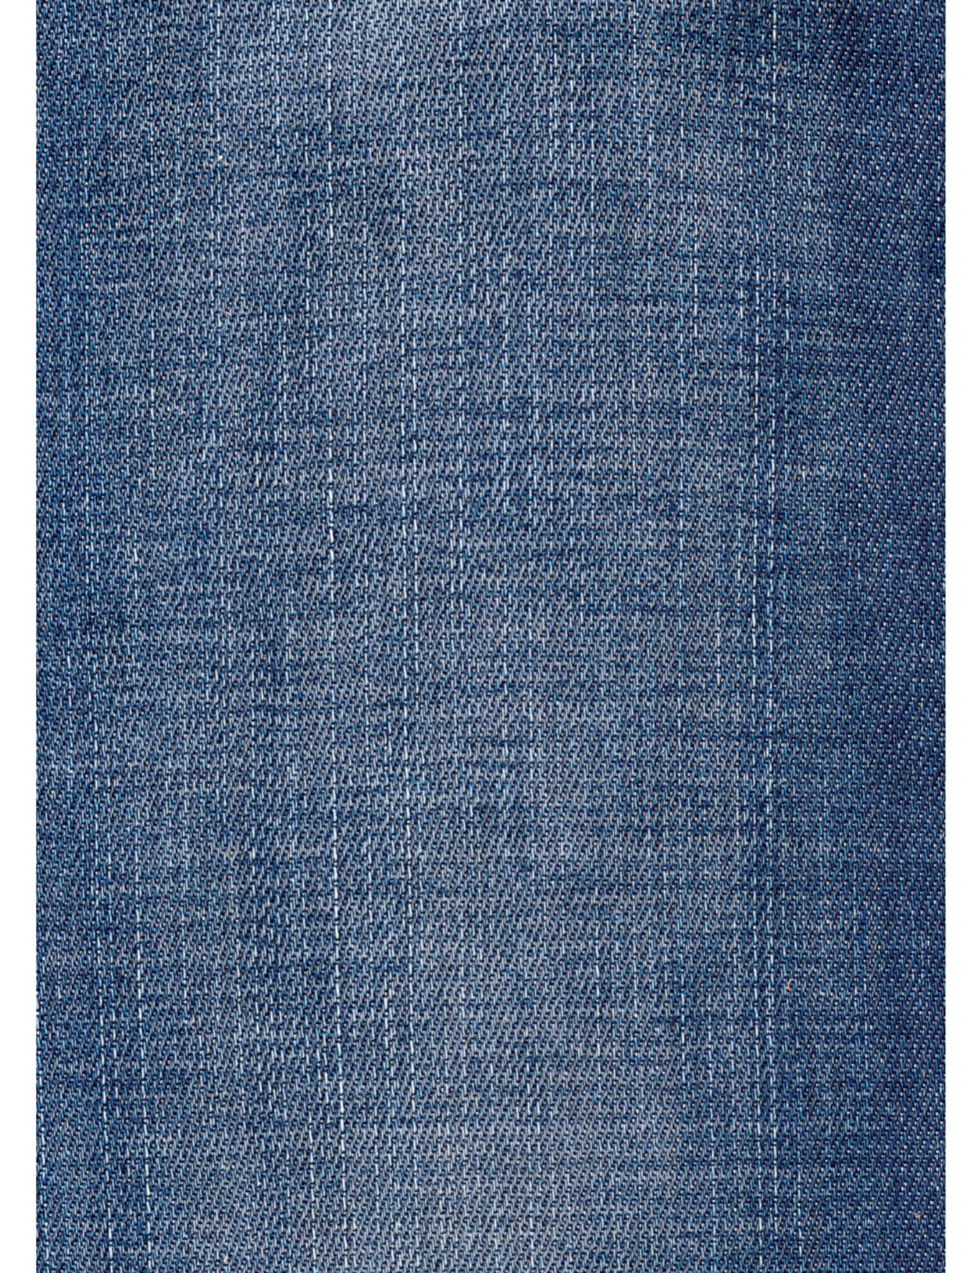 denim texture jeans background wallpaper blue ftesticke.